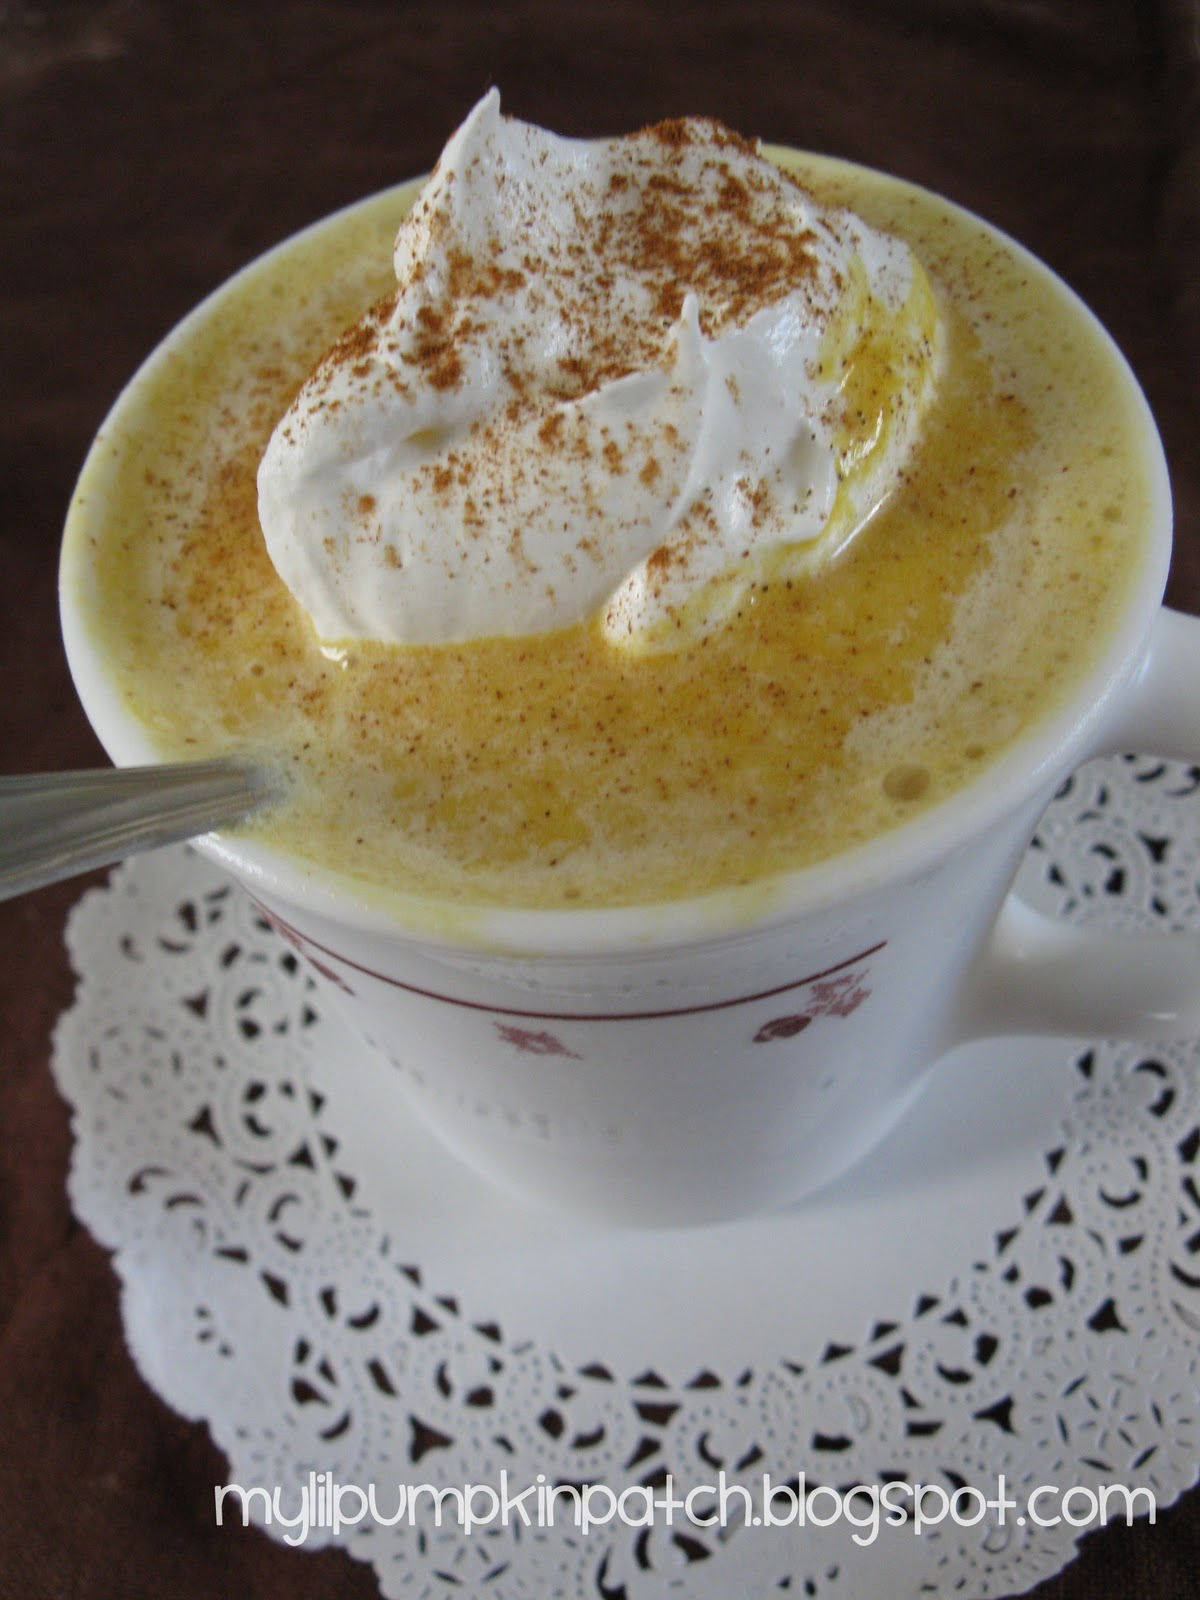 ... Pumpkin Pie Milkshake recipe from Stephanie at My Li'l Pumpkin Patch